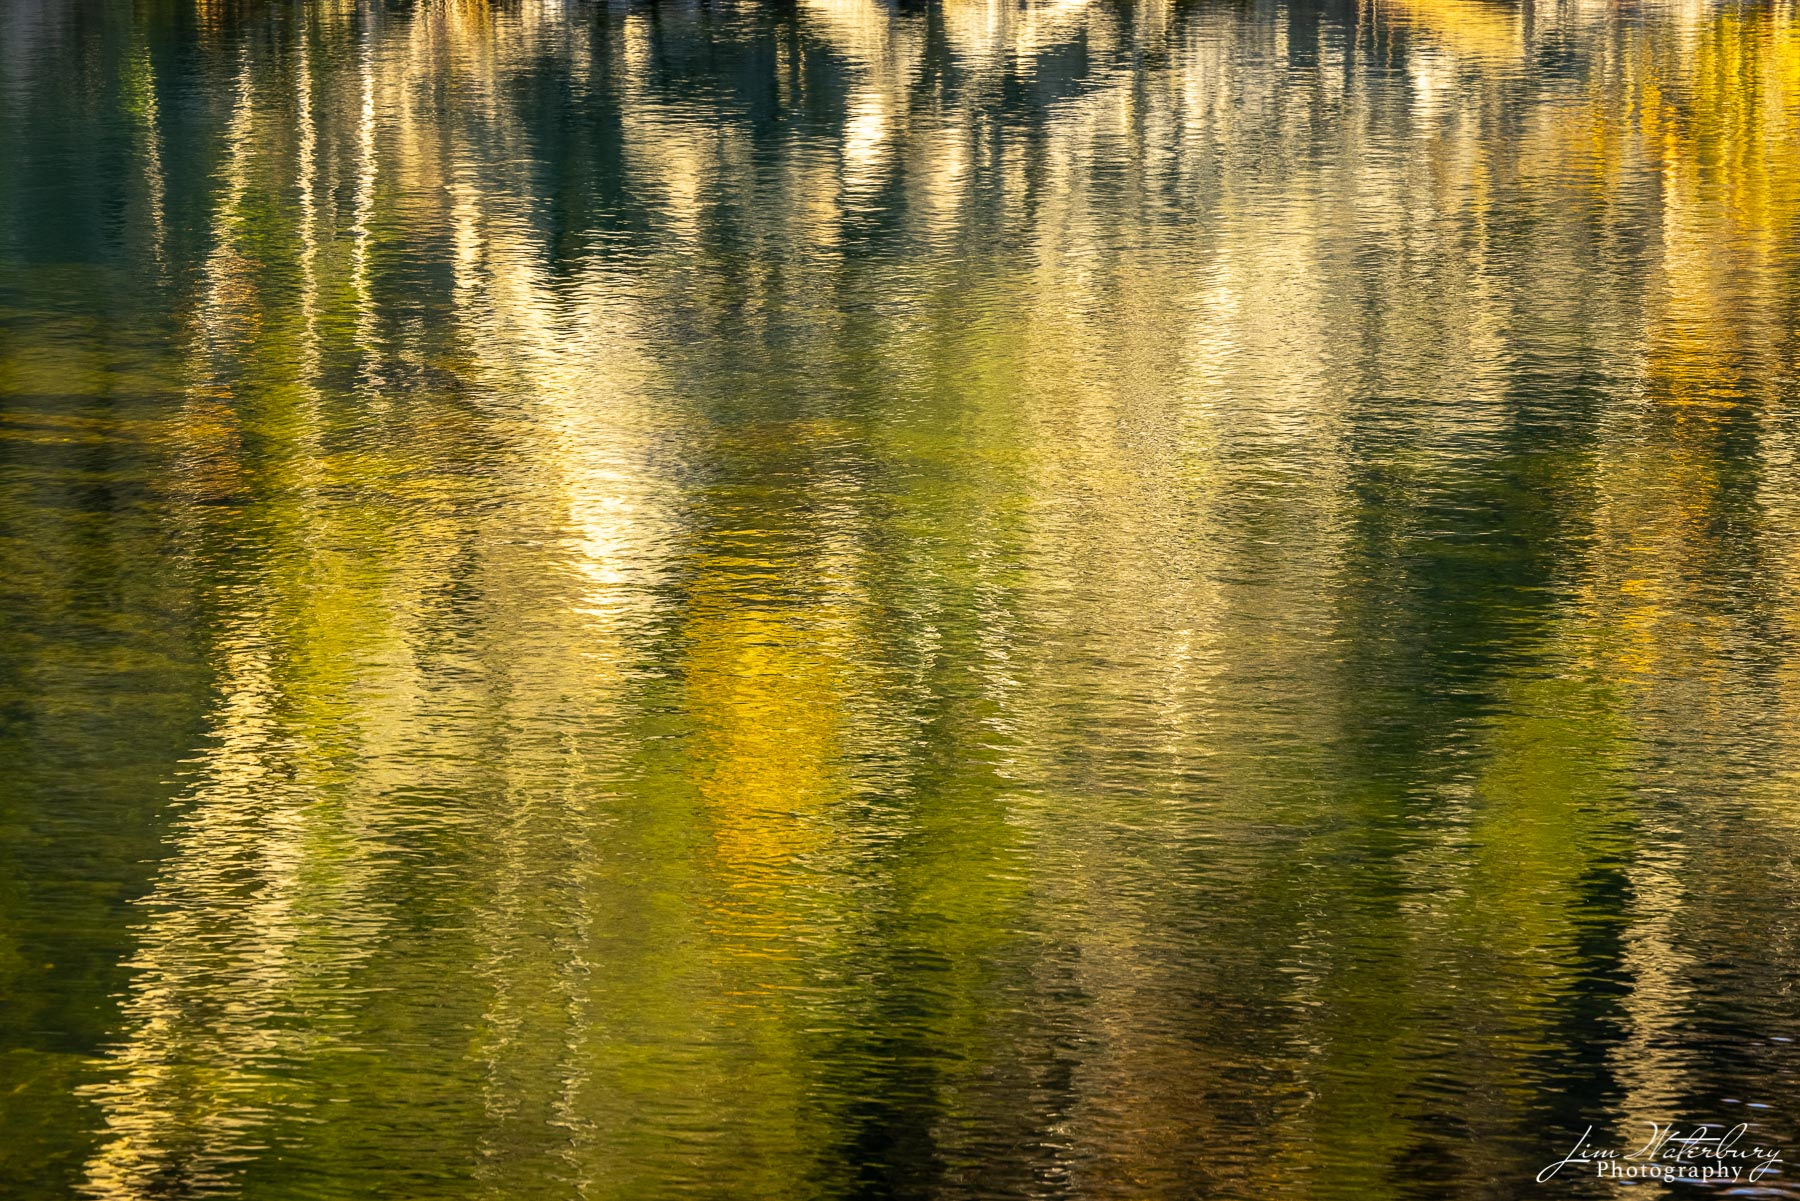 Fall reflections in the waters of Long Cove Quarry, Maine